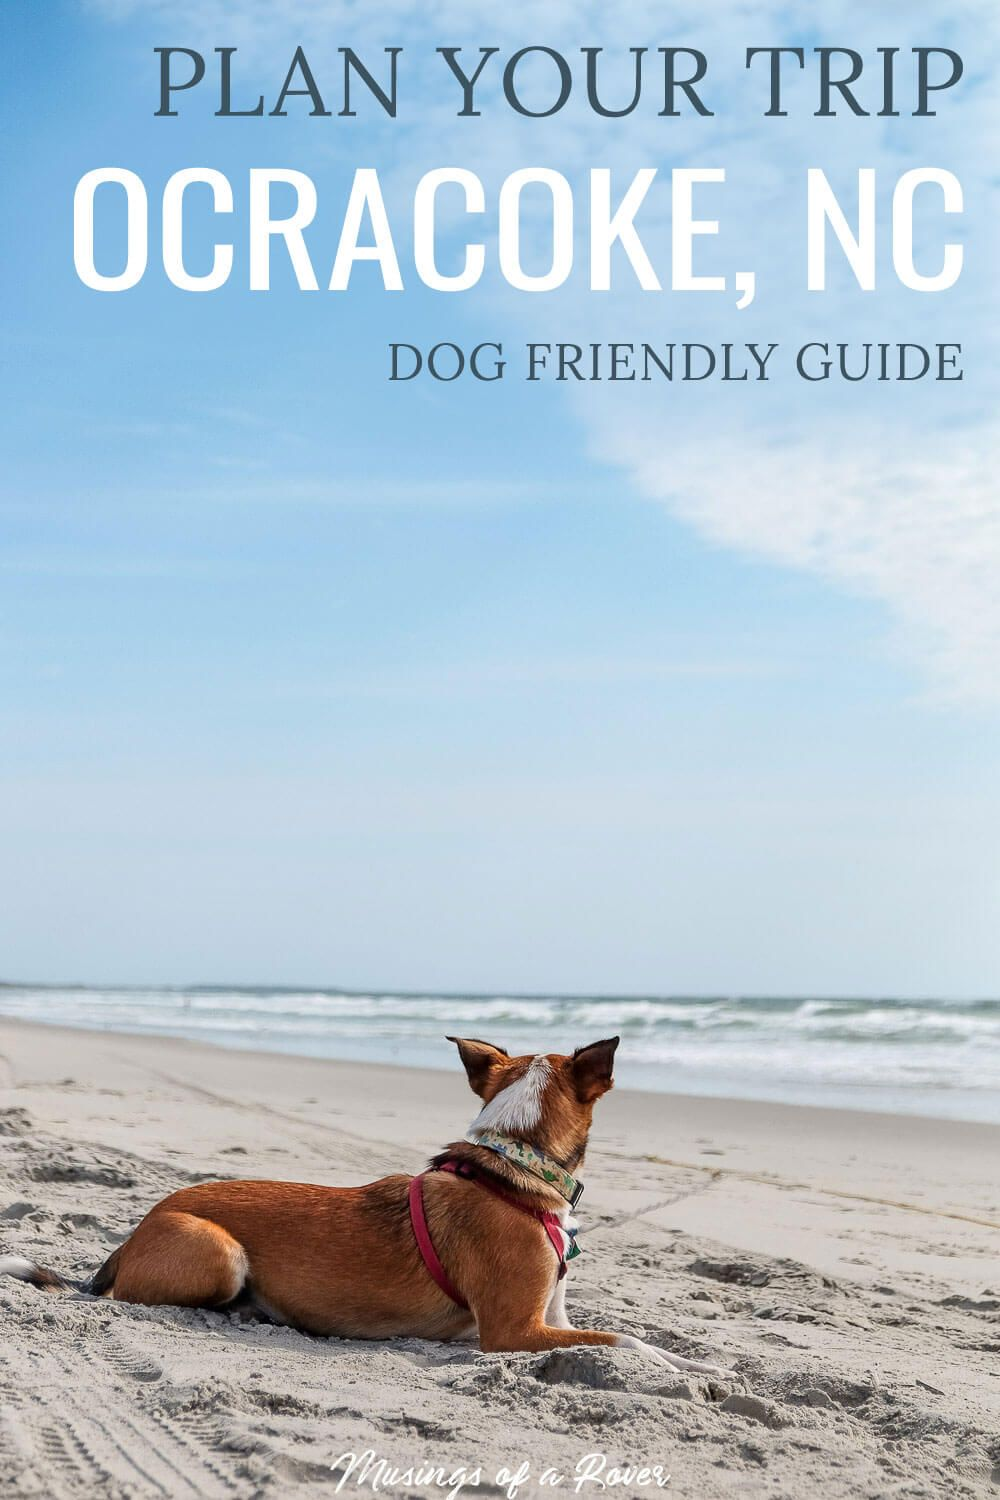 Headed to Ocracoke Island in the Outer Banks for your vacation? Discover where to eat, where to stay, and things to do in Ocracoke, NC - dog friendly included!